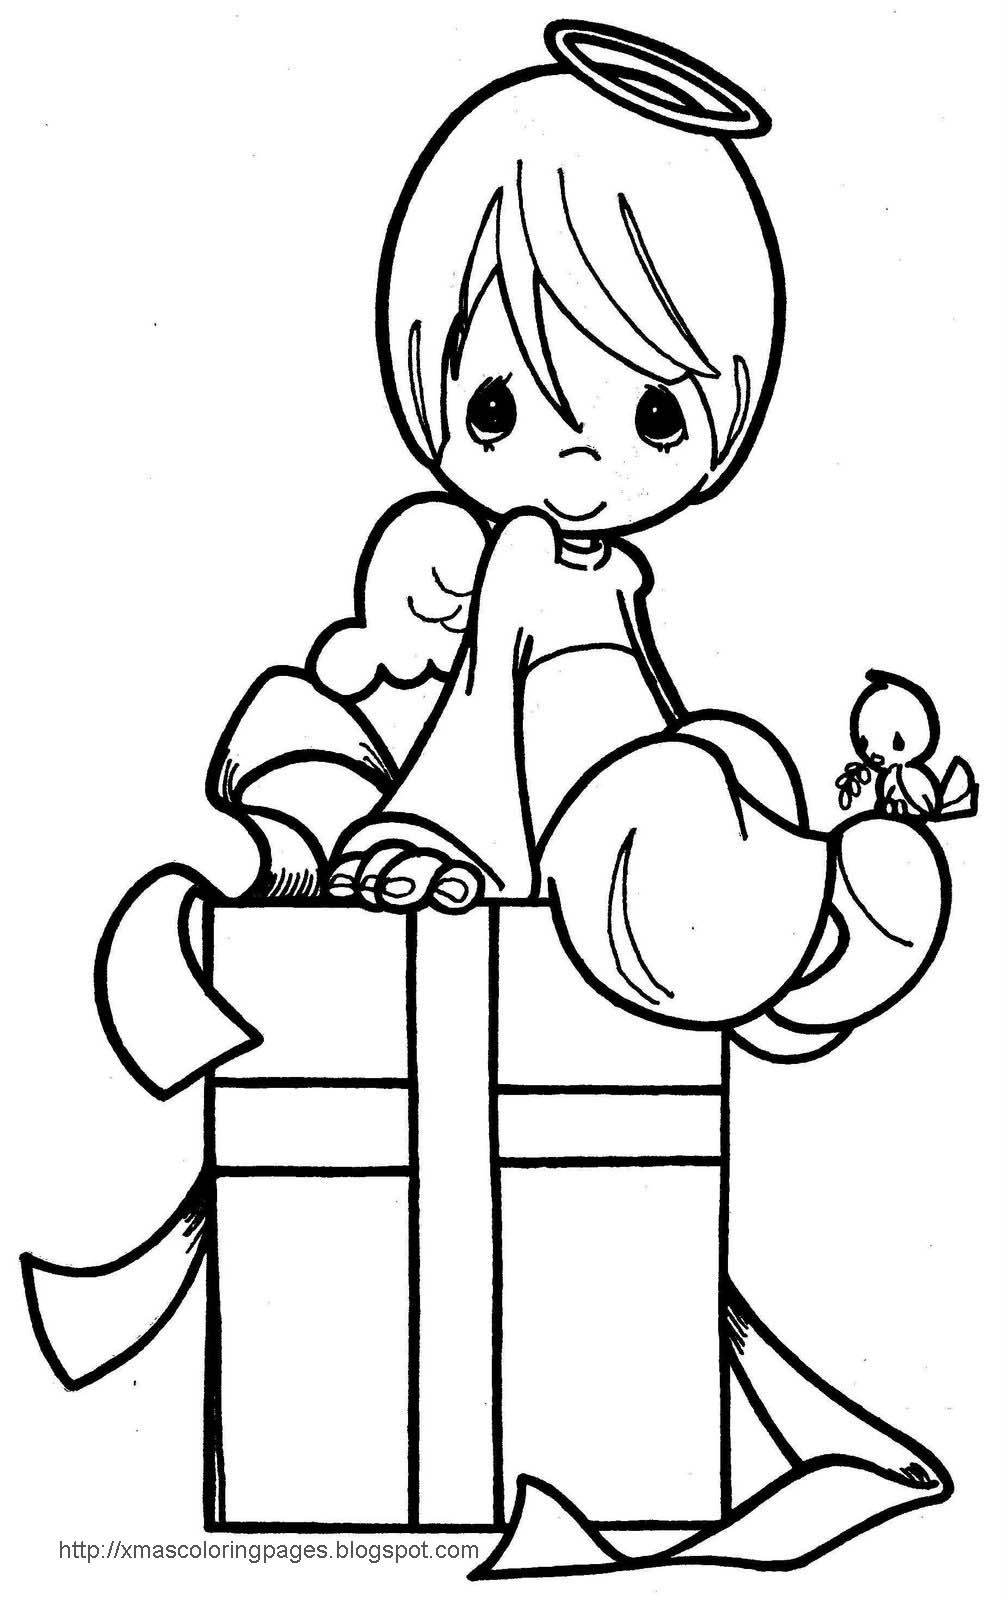 Xmas Coloring Pages Printable With Hundreds Of Free And Activity